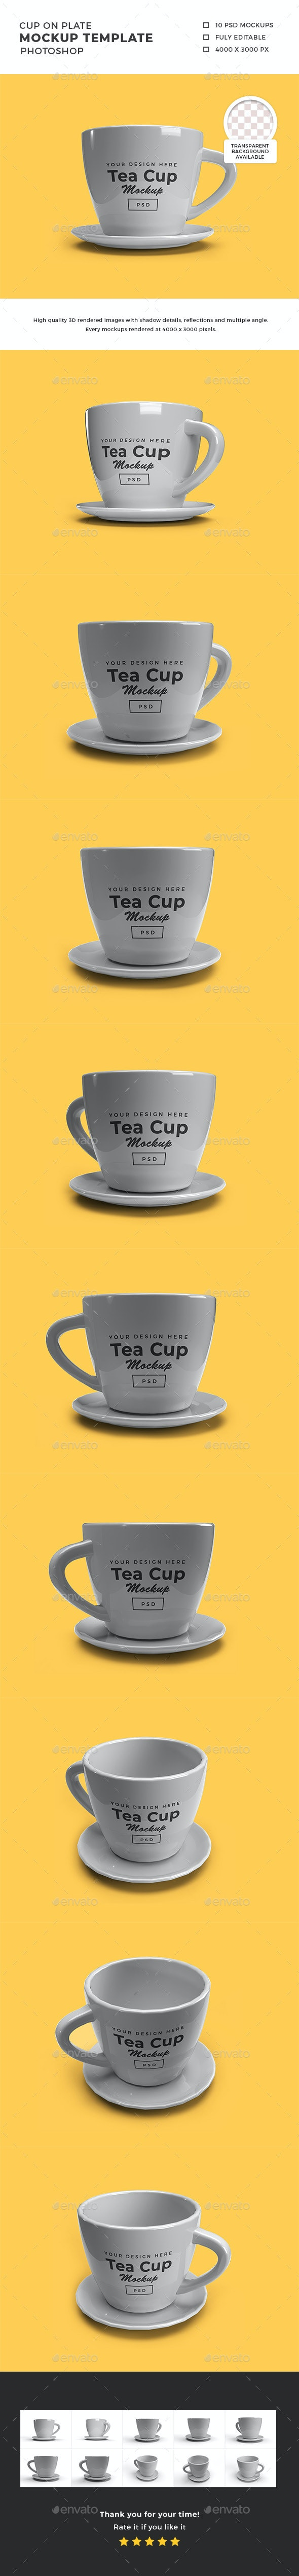 Tea Cup on Plate 3D Mockup Template Pack